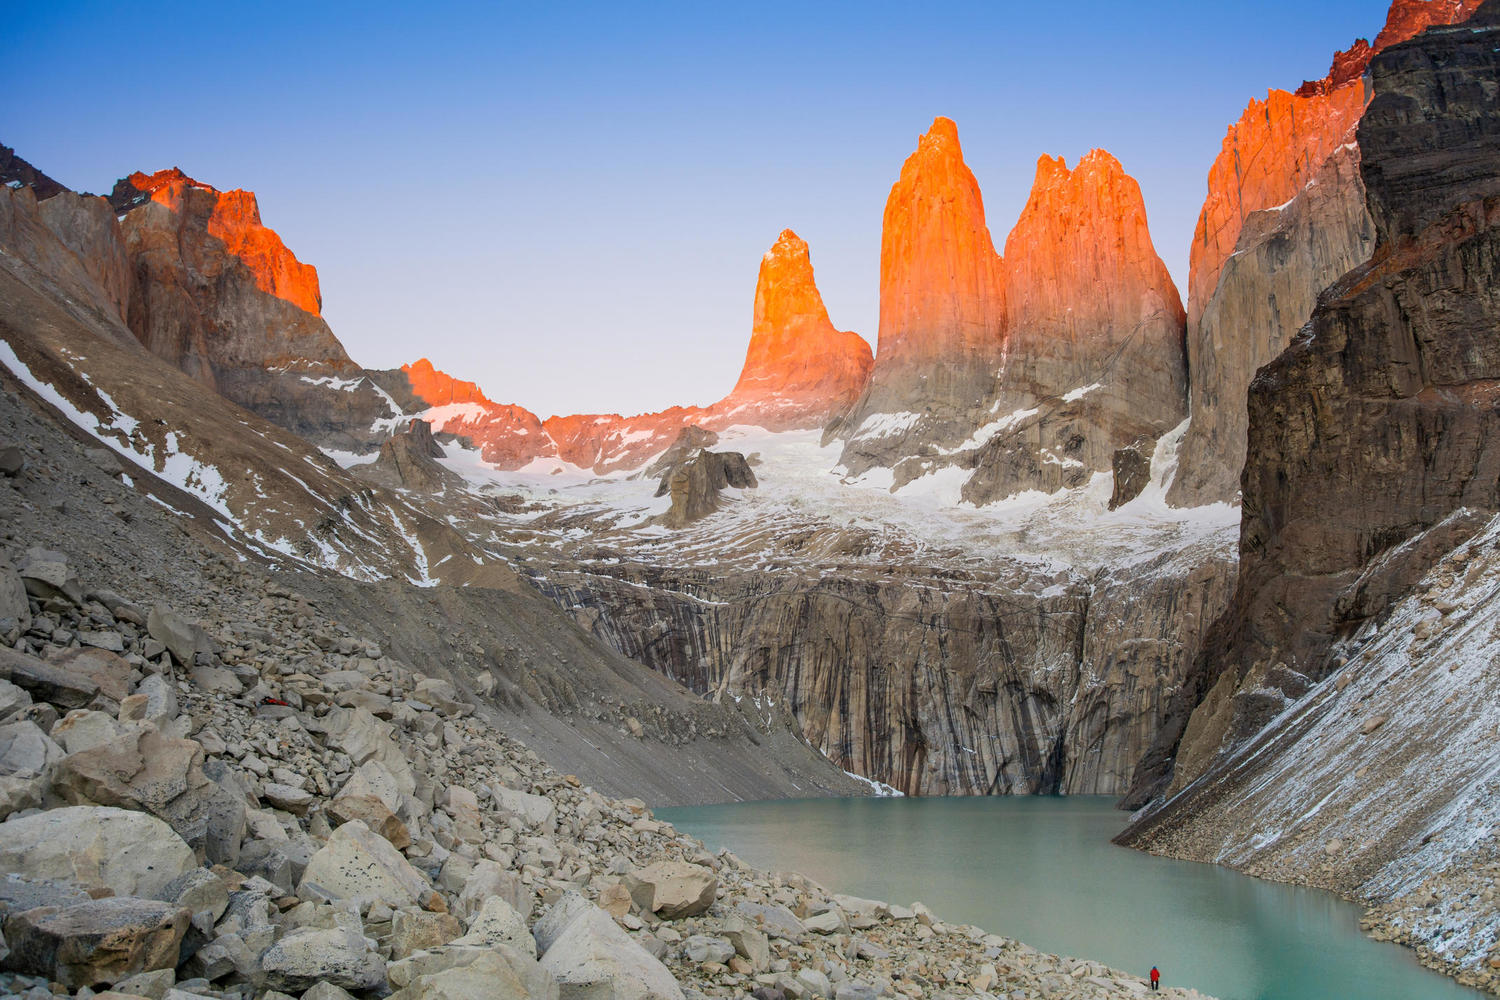 Watching the sunrise over the towers of Torres del Paine